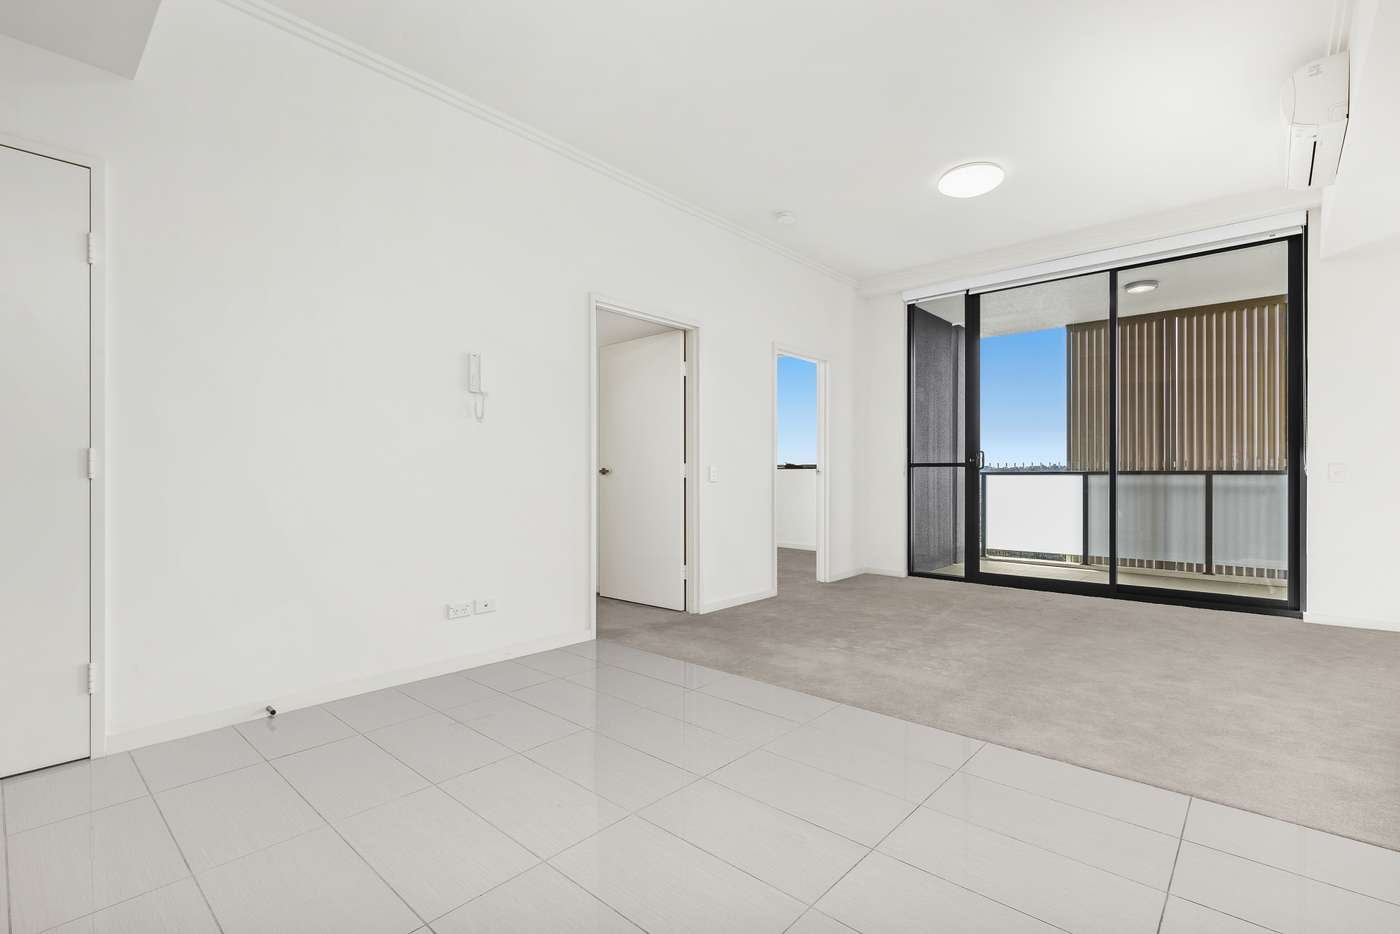 Main view of Homely apartment listing, 623/5 Vermont Crescent, Riverwood NSW 2210